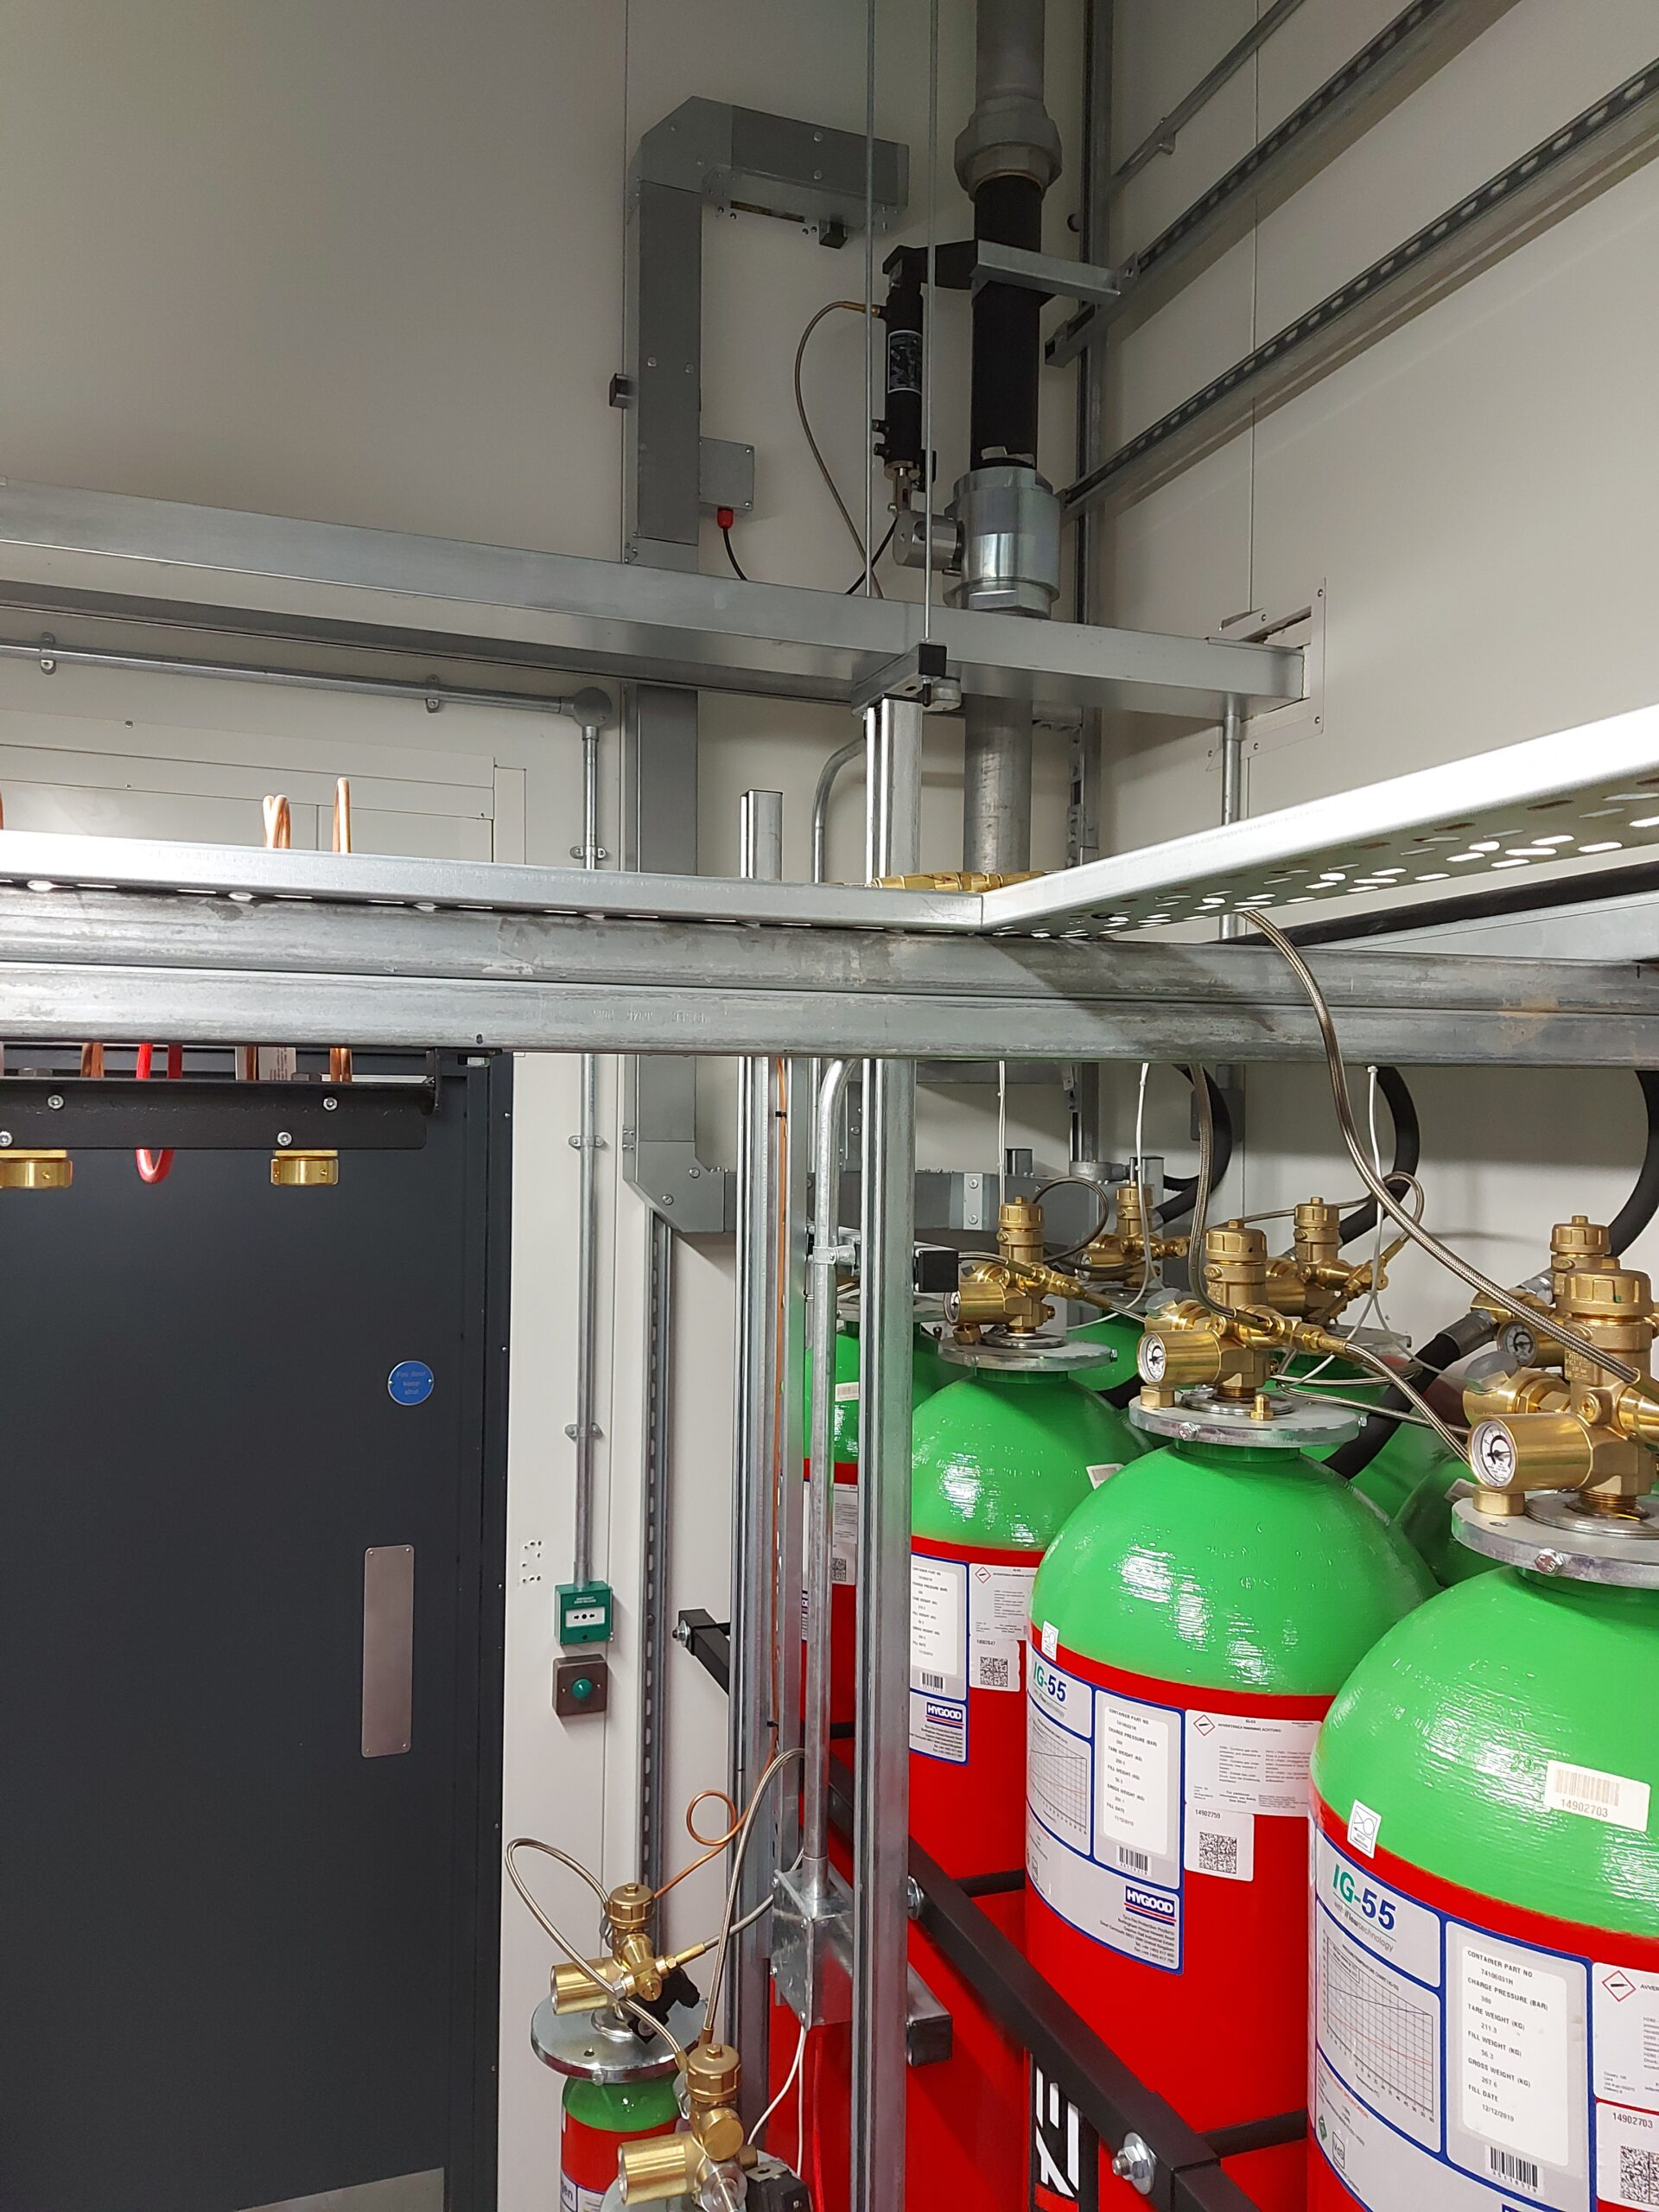 322 Gas Bottles And An Automatic Valve They Couldn't Reach: A Case Study!